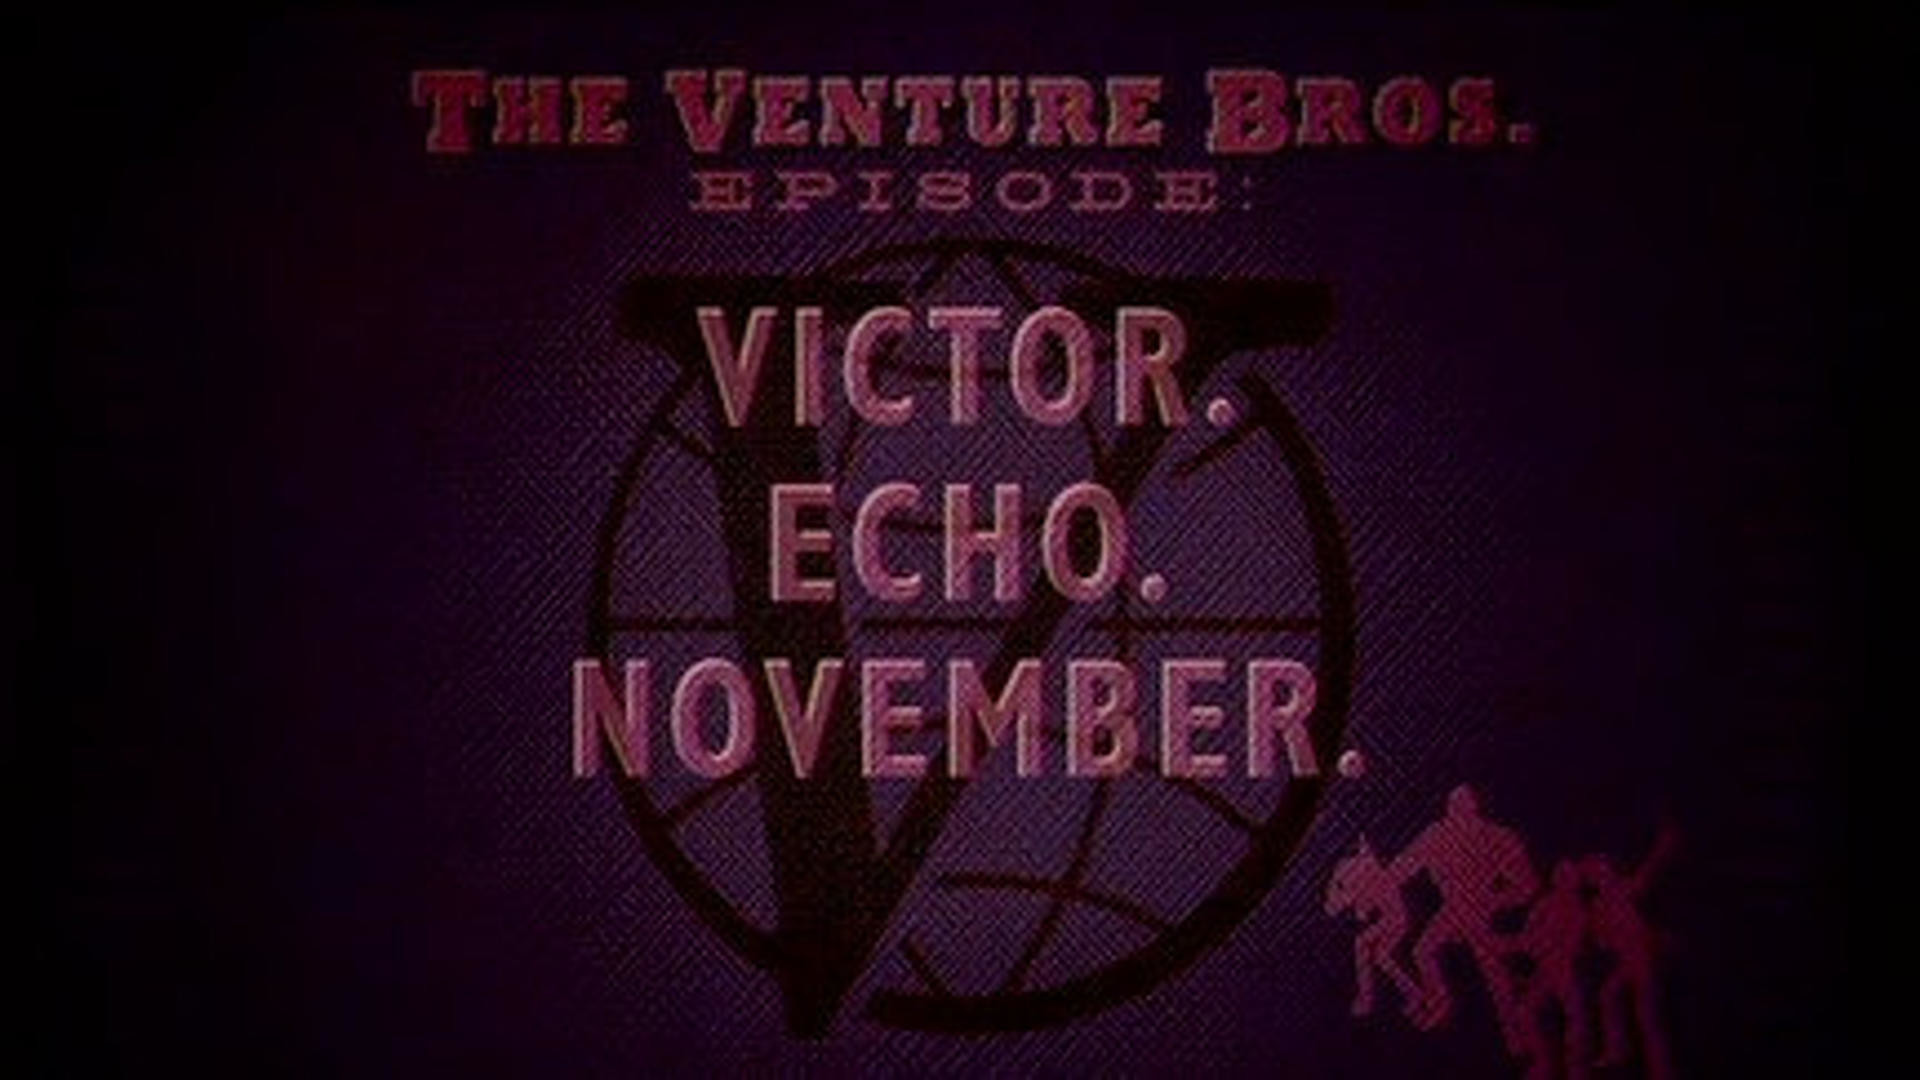 1920x1080 The Venture Bros. (S02E06): Victor. Echo. November Summary - Season 2  Episode 6 Guide